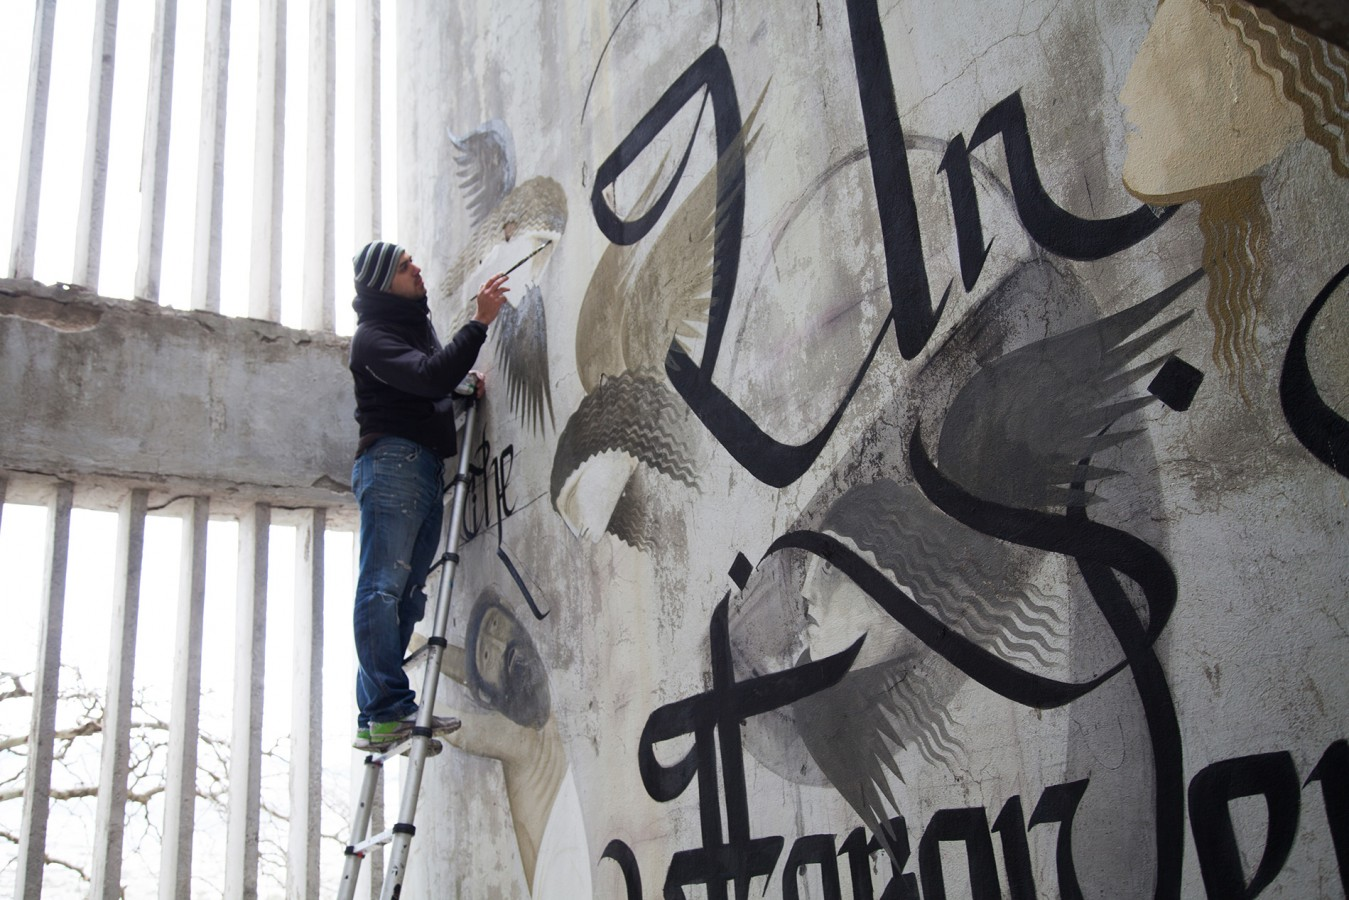 simon-silaidis-fikos-antonios-the-unforgiven-new-mural-09